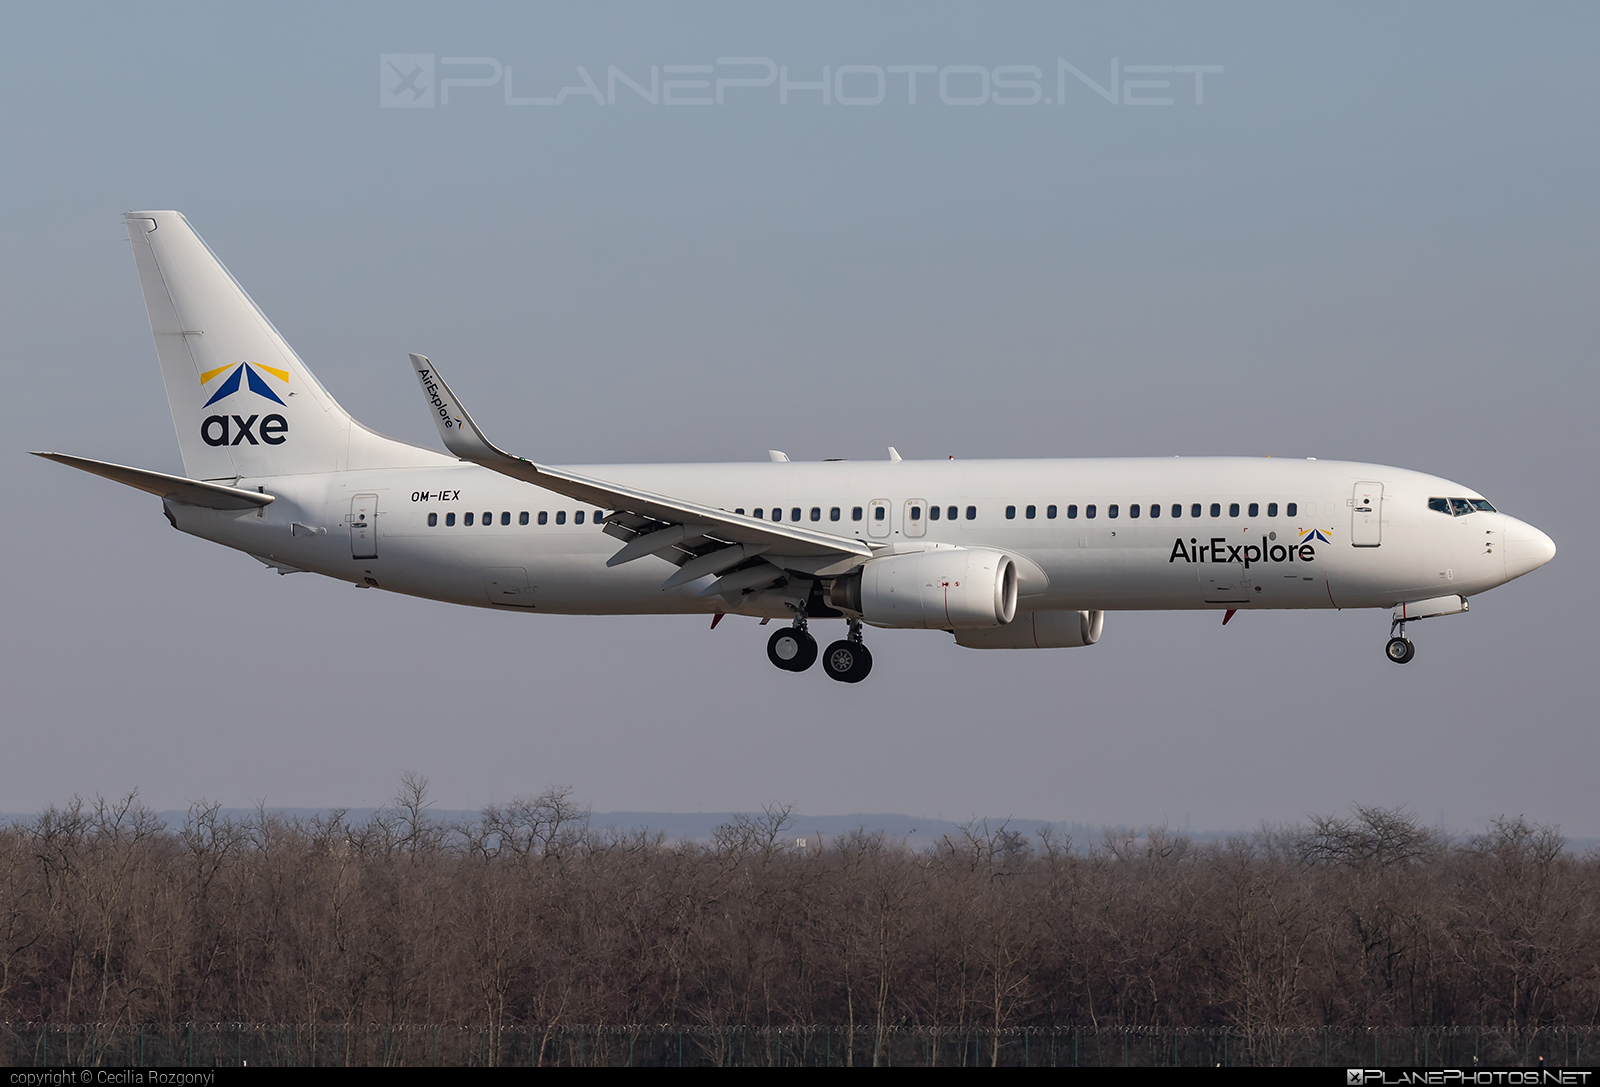 Boeing 737-800 - OM-IEX operated by AirExplore #b737 #b737nextgen #b737ng #boeing #boeing737